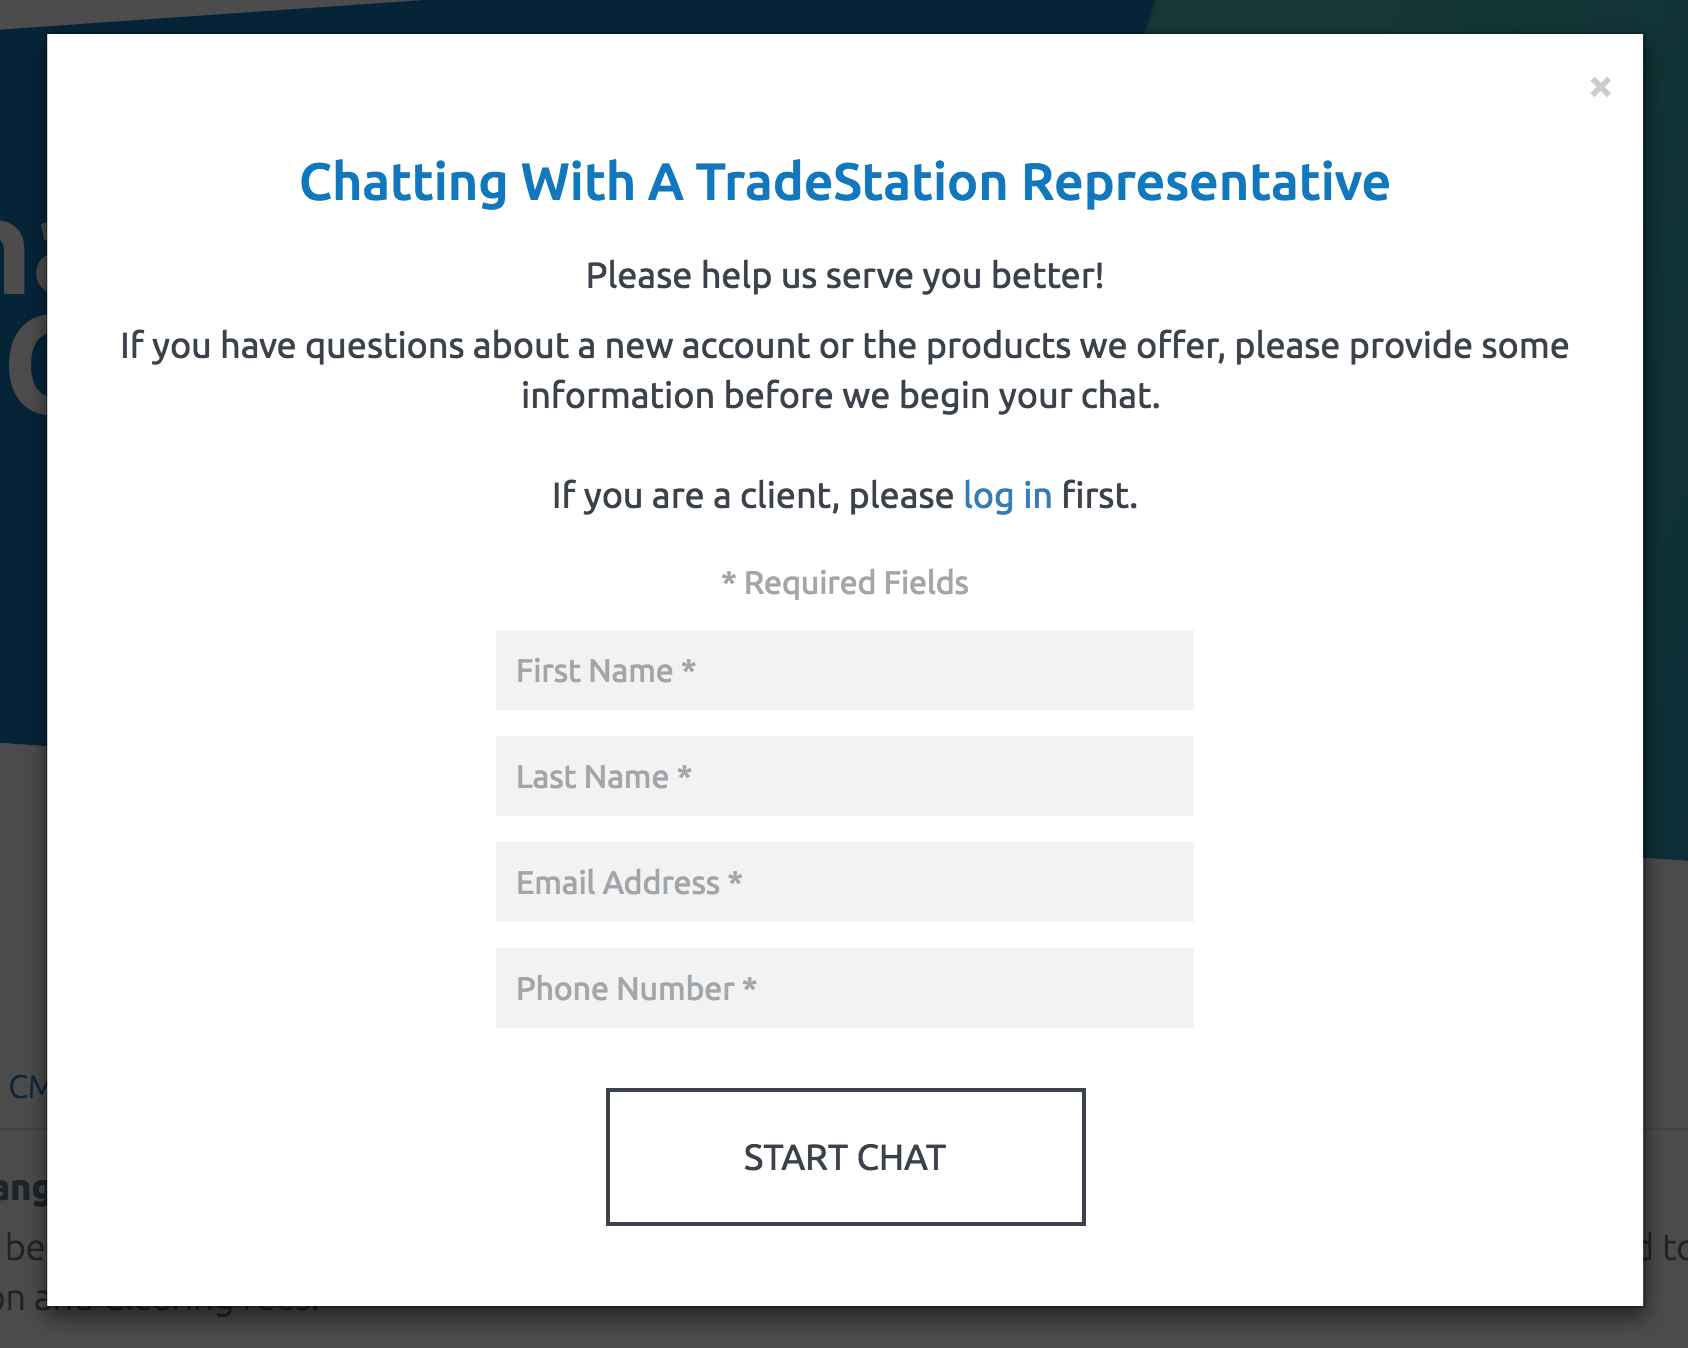 tradestation-review-customer-service online chat welcome page